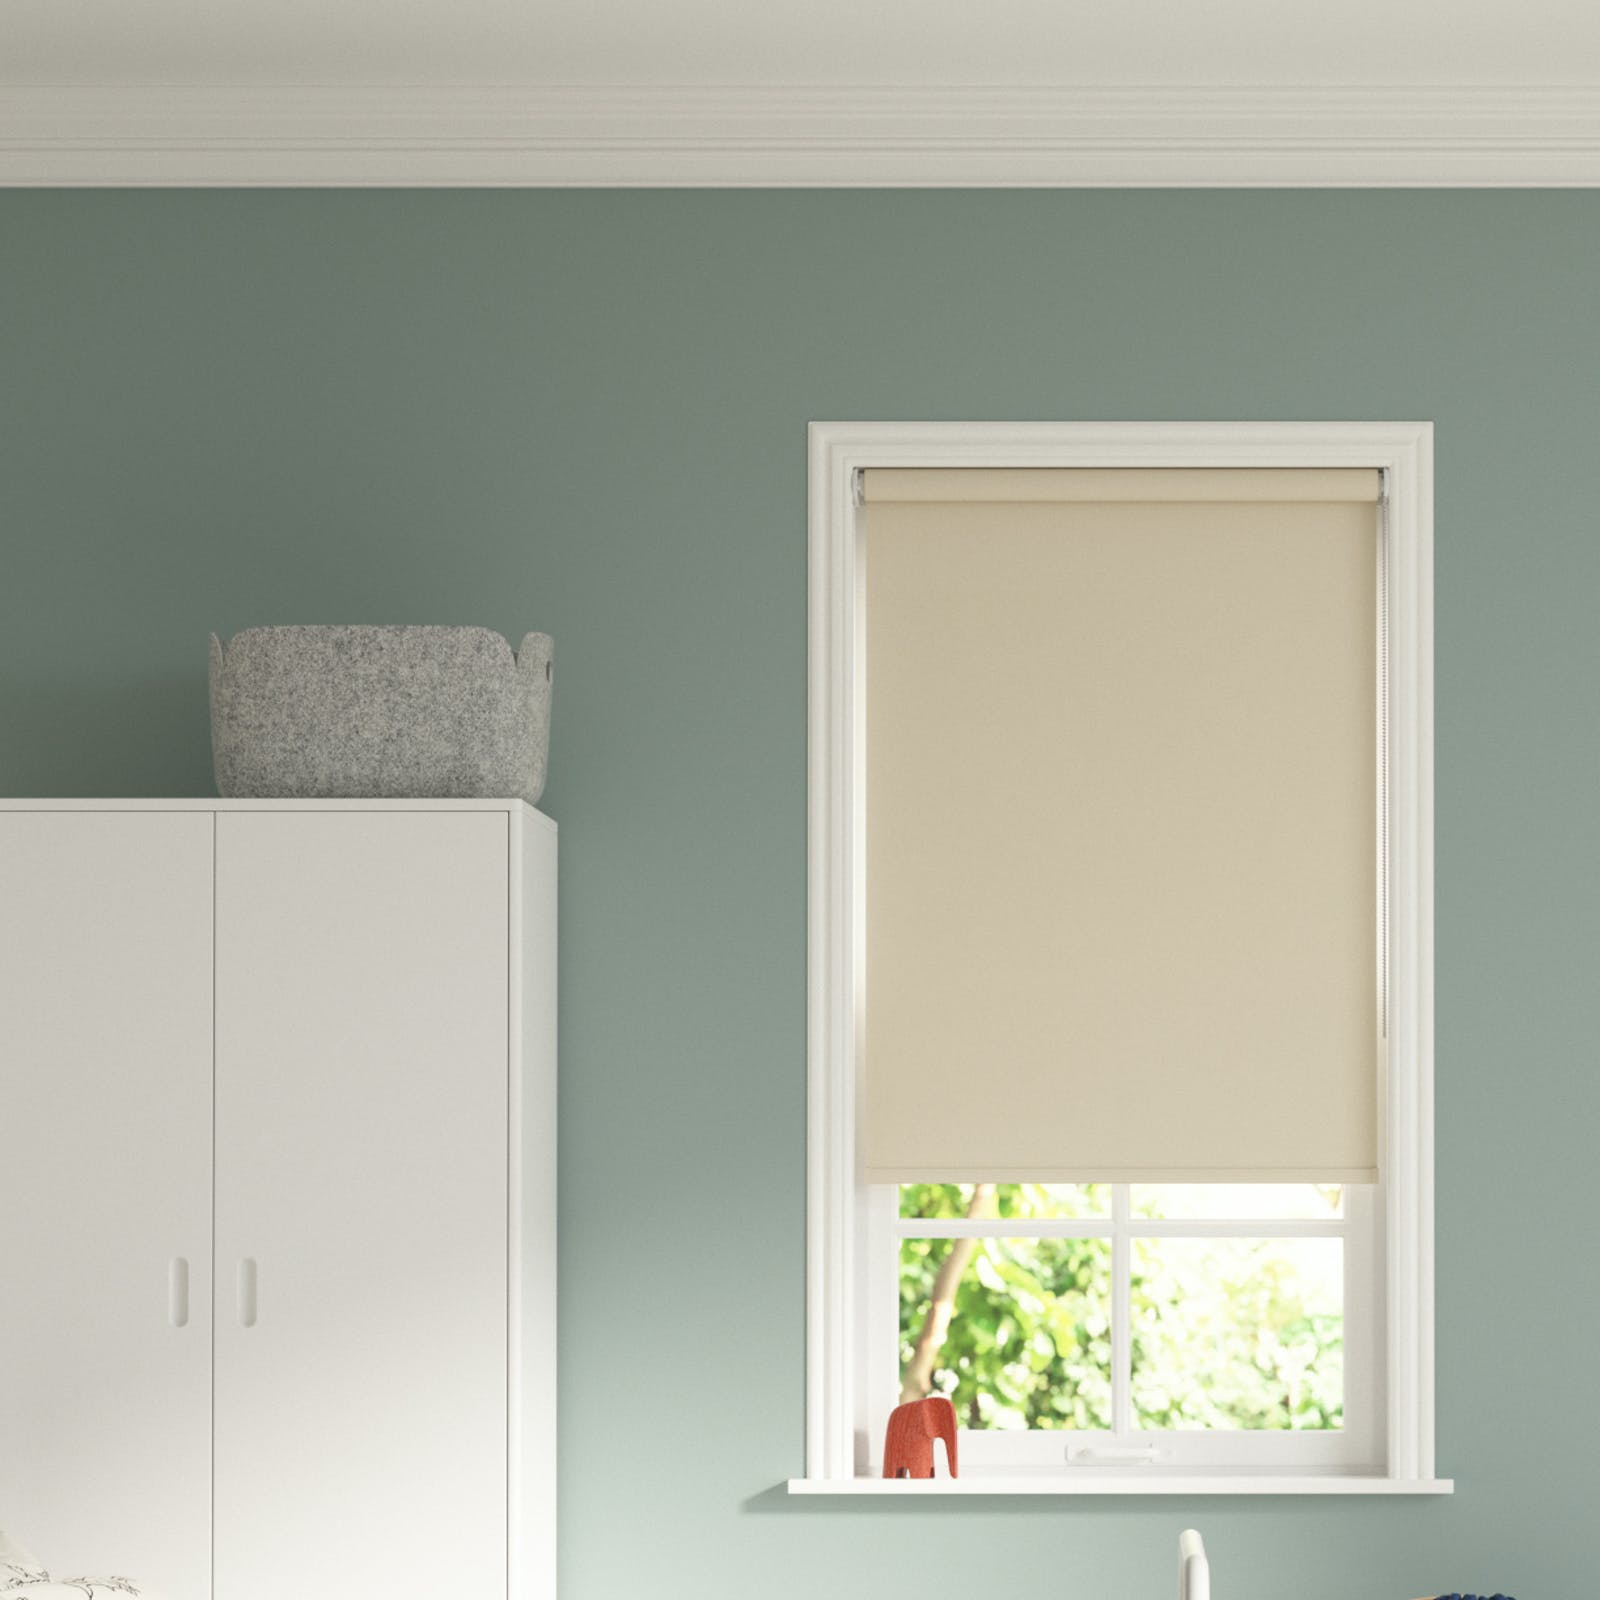 Image of a bedroom setting with Beige 01 roller blinds and Teal 01 walls